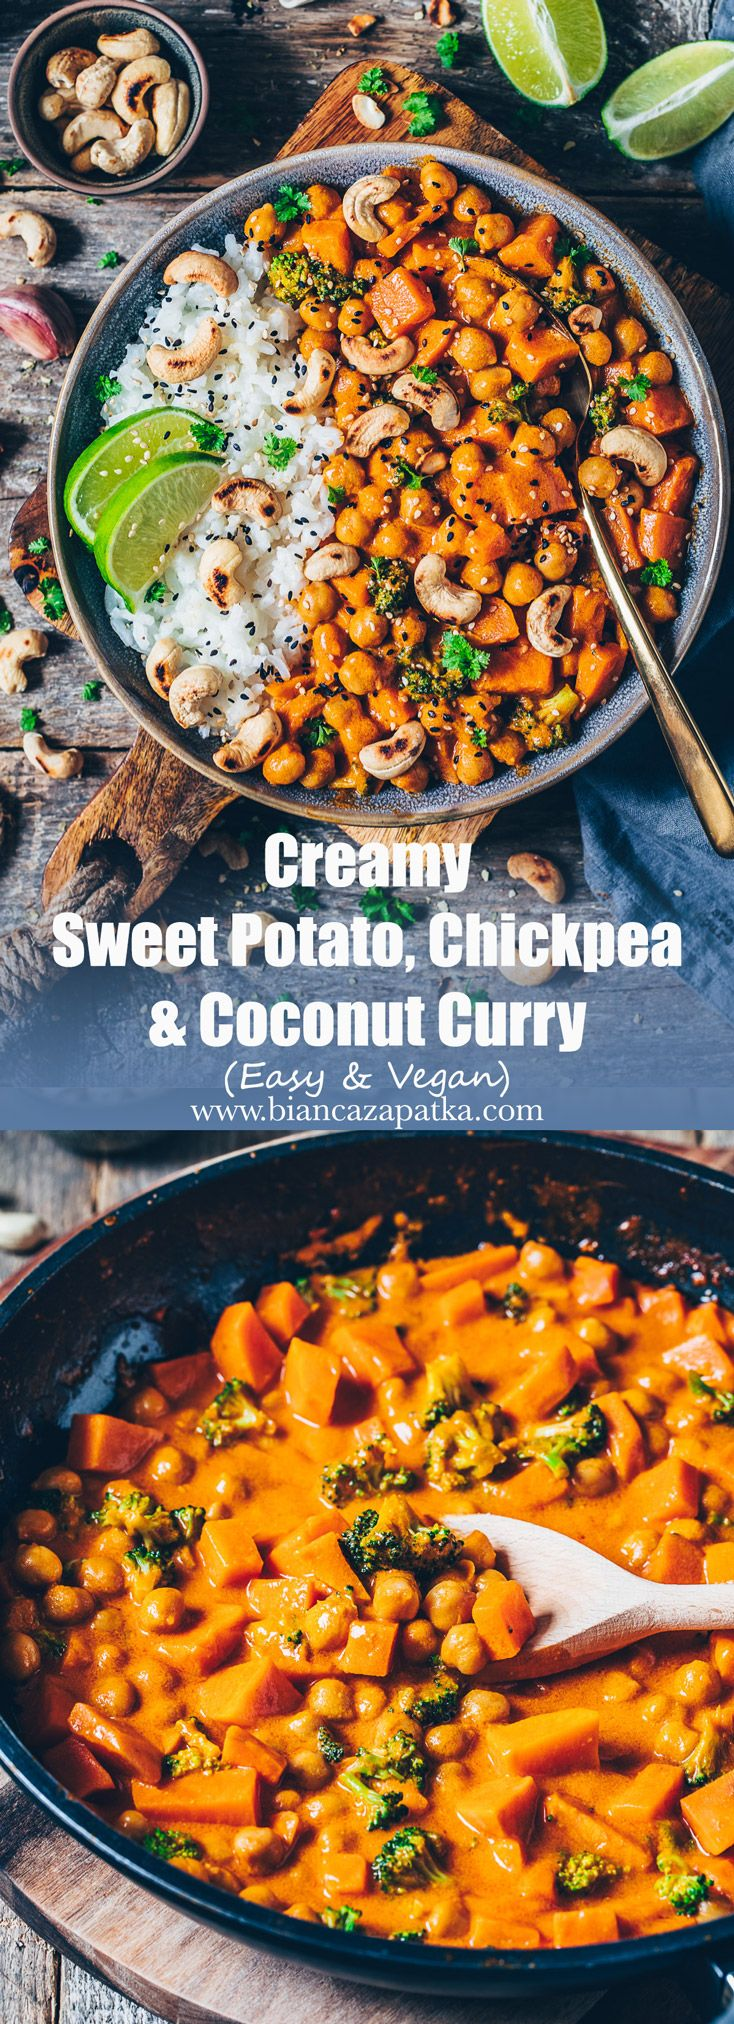 Sweet Potato, Chickpea and Coconut Curry – Bianca Zapatka | Recipes